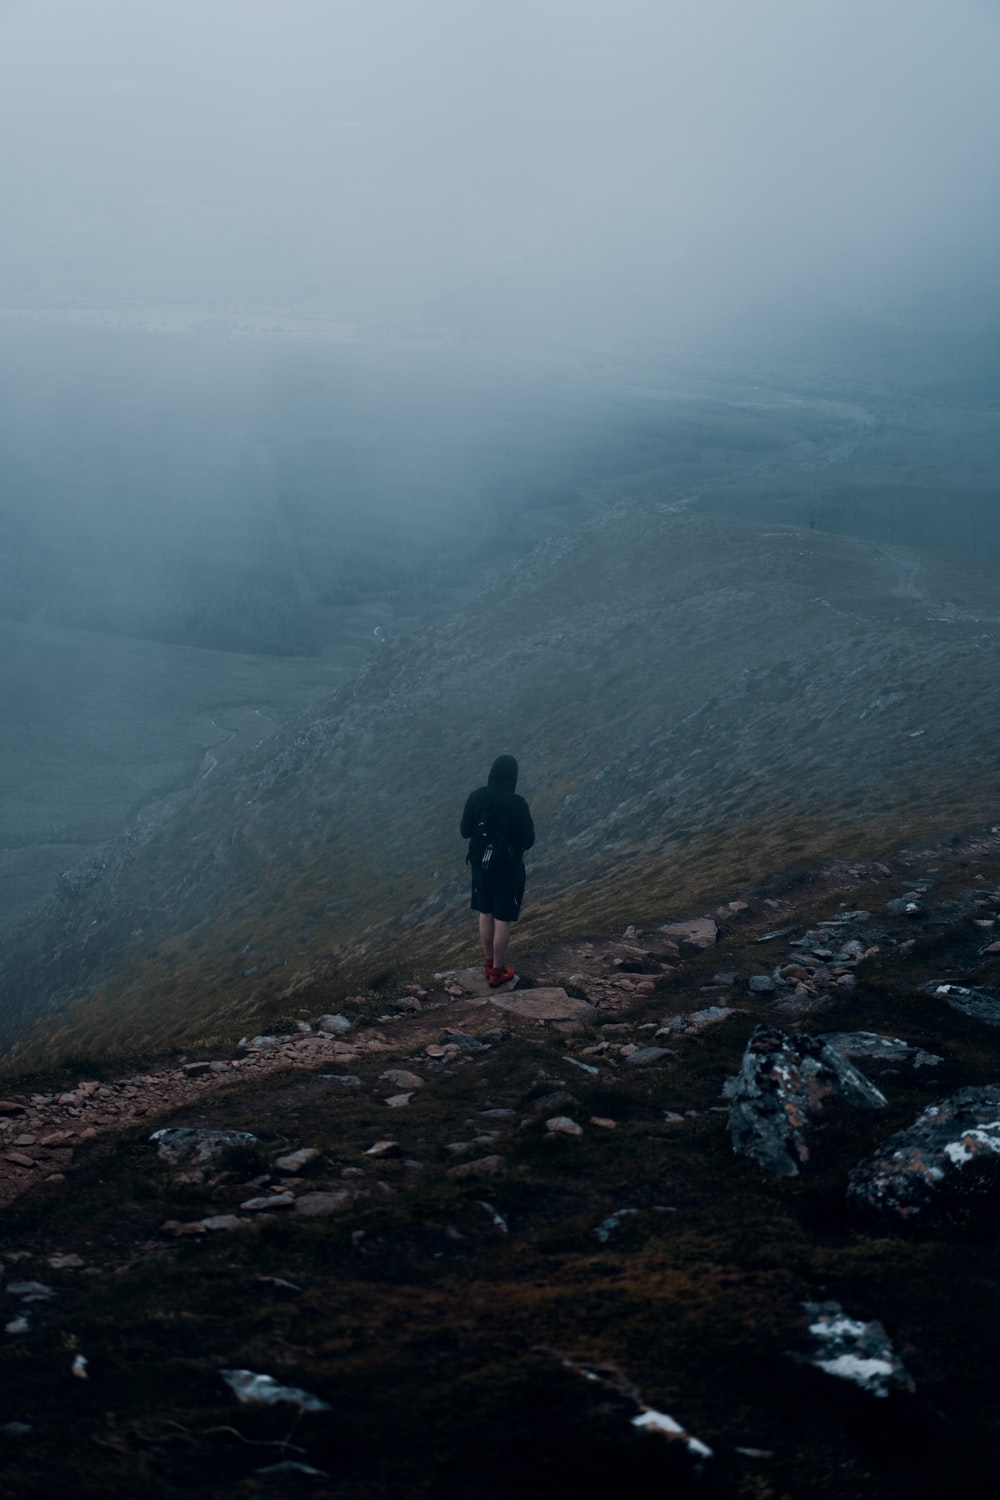 person in black jacket standing on rocky hill during foggy weather